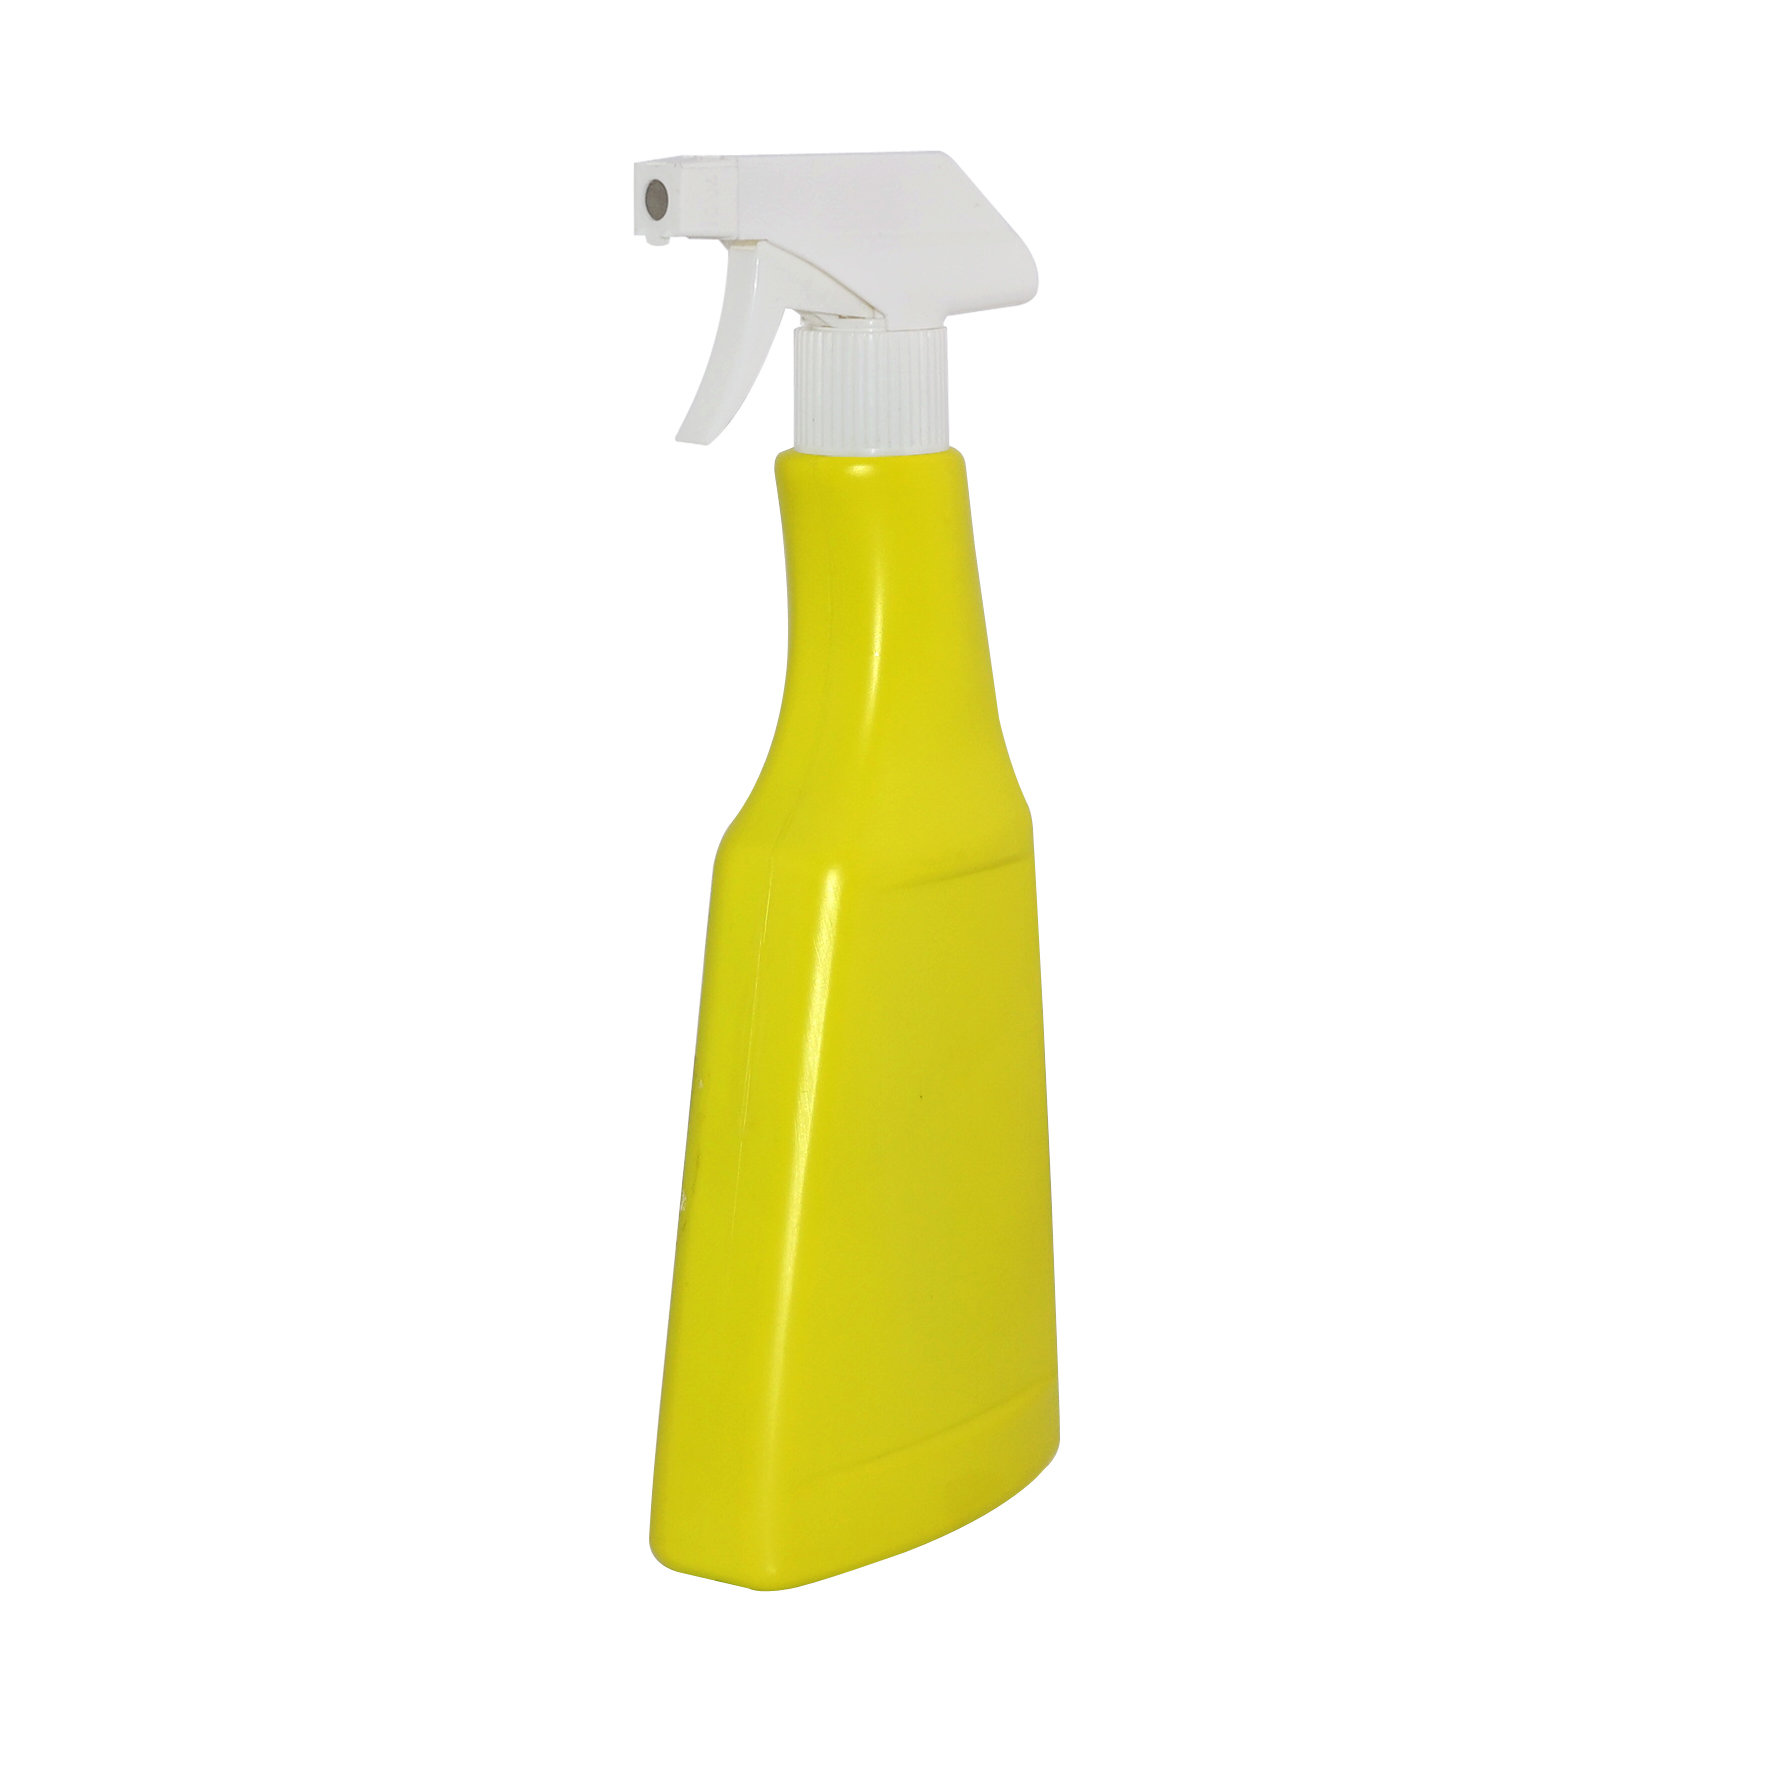 Empty 550ml plastic detergent bottle HDPE plastic spray bottle with 28/410 trigger sprayer